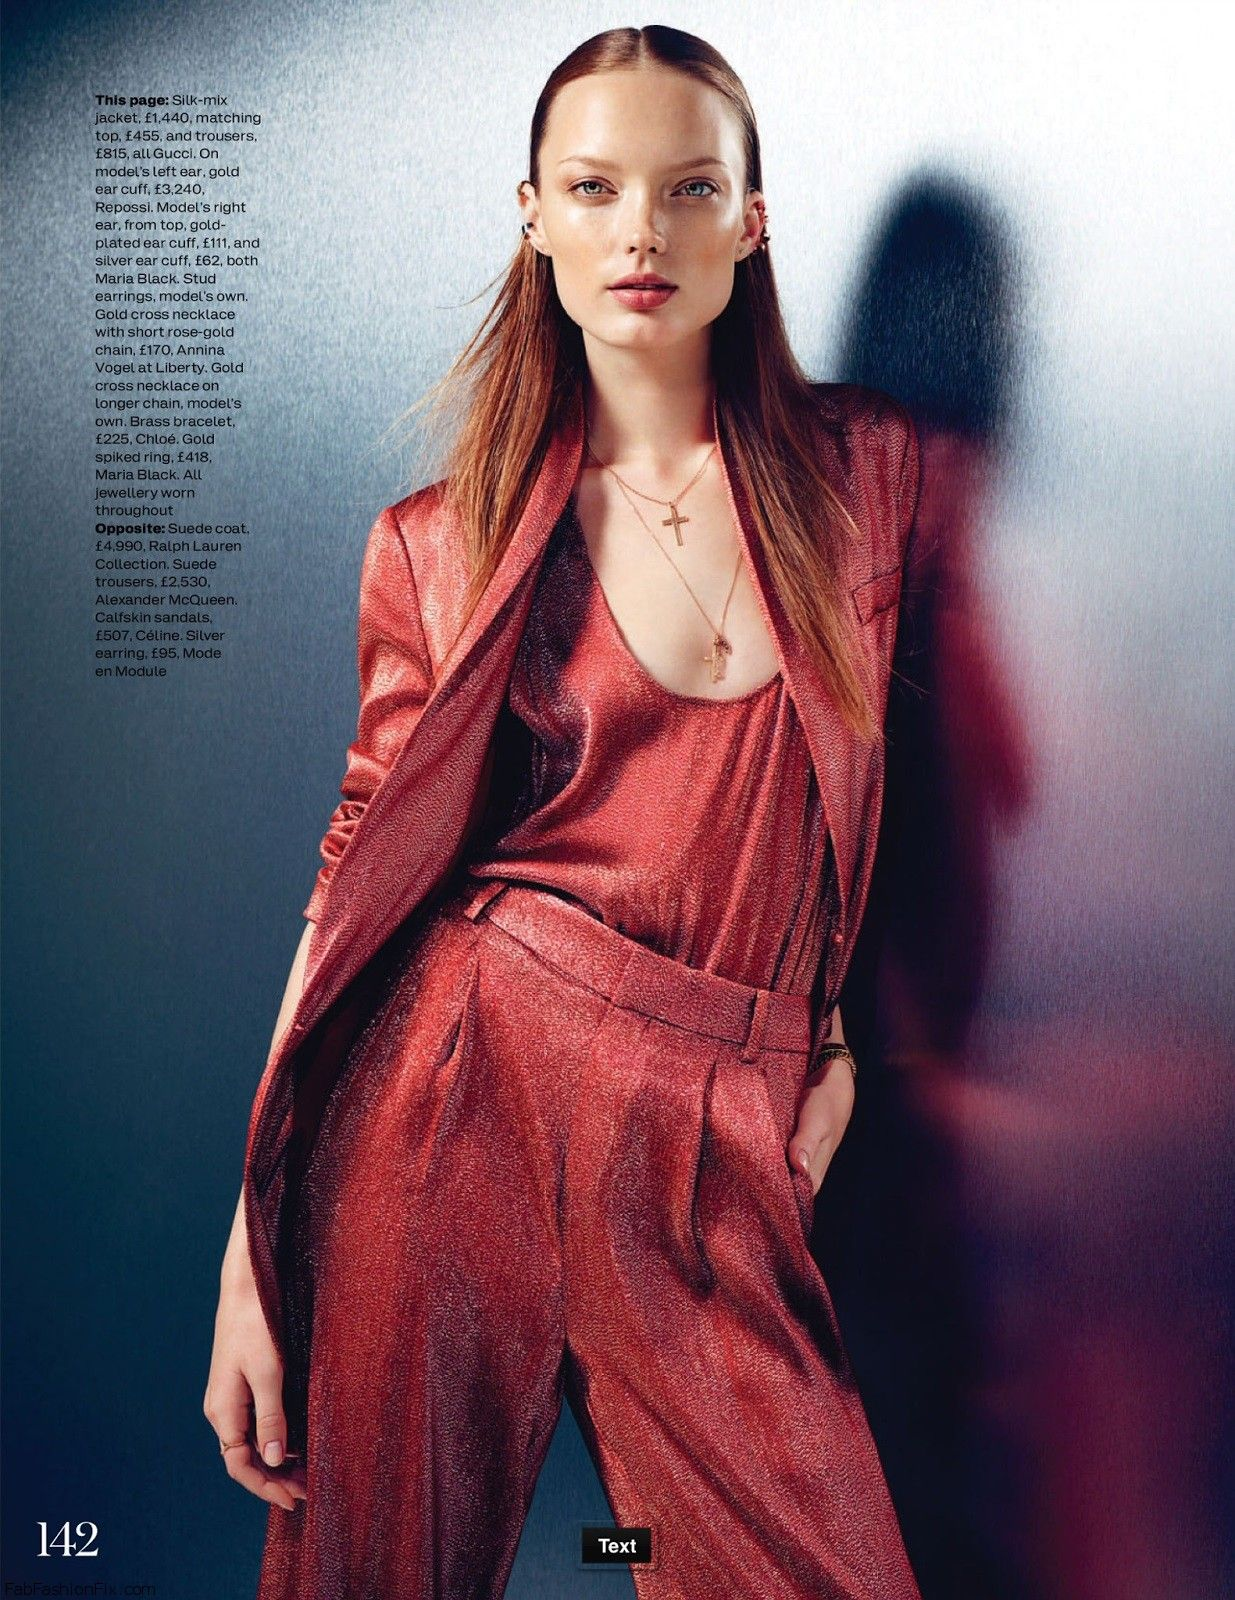 fashion_scans_remastered-naty_chabanenko-elle_uk-january_2014-scanned_by_vampirehorde-hq-1